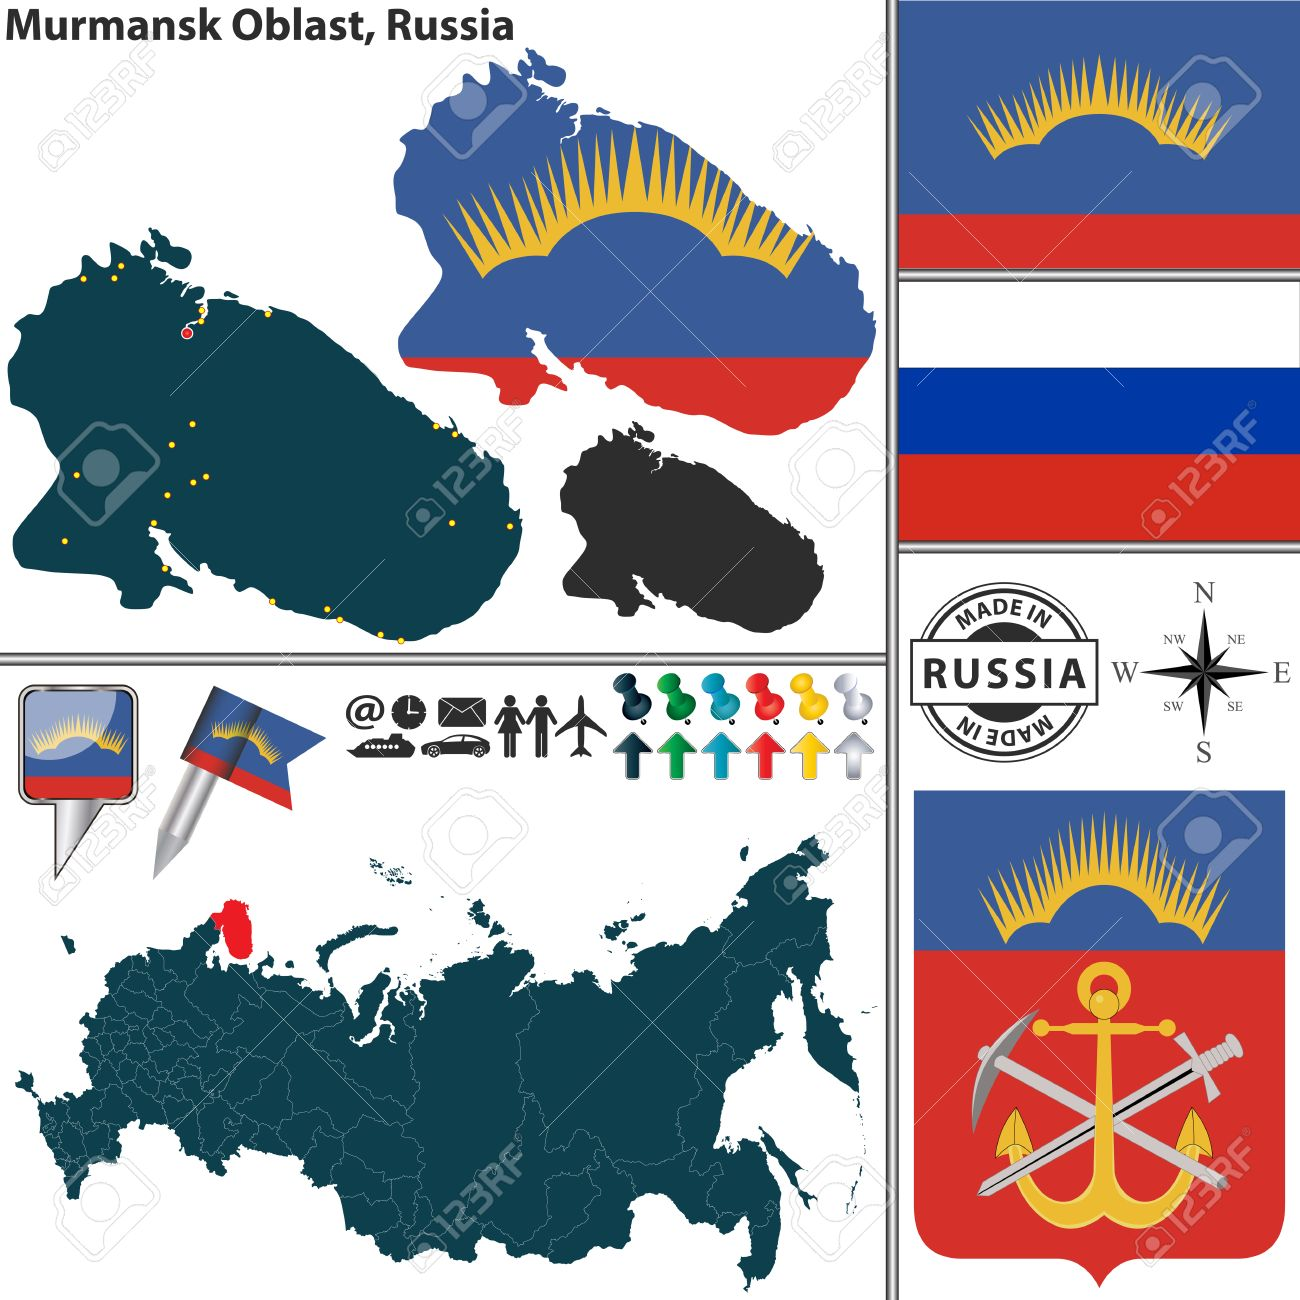 Map Of Murmansk Oblast With Coat Of Arms And Location On Russian